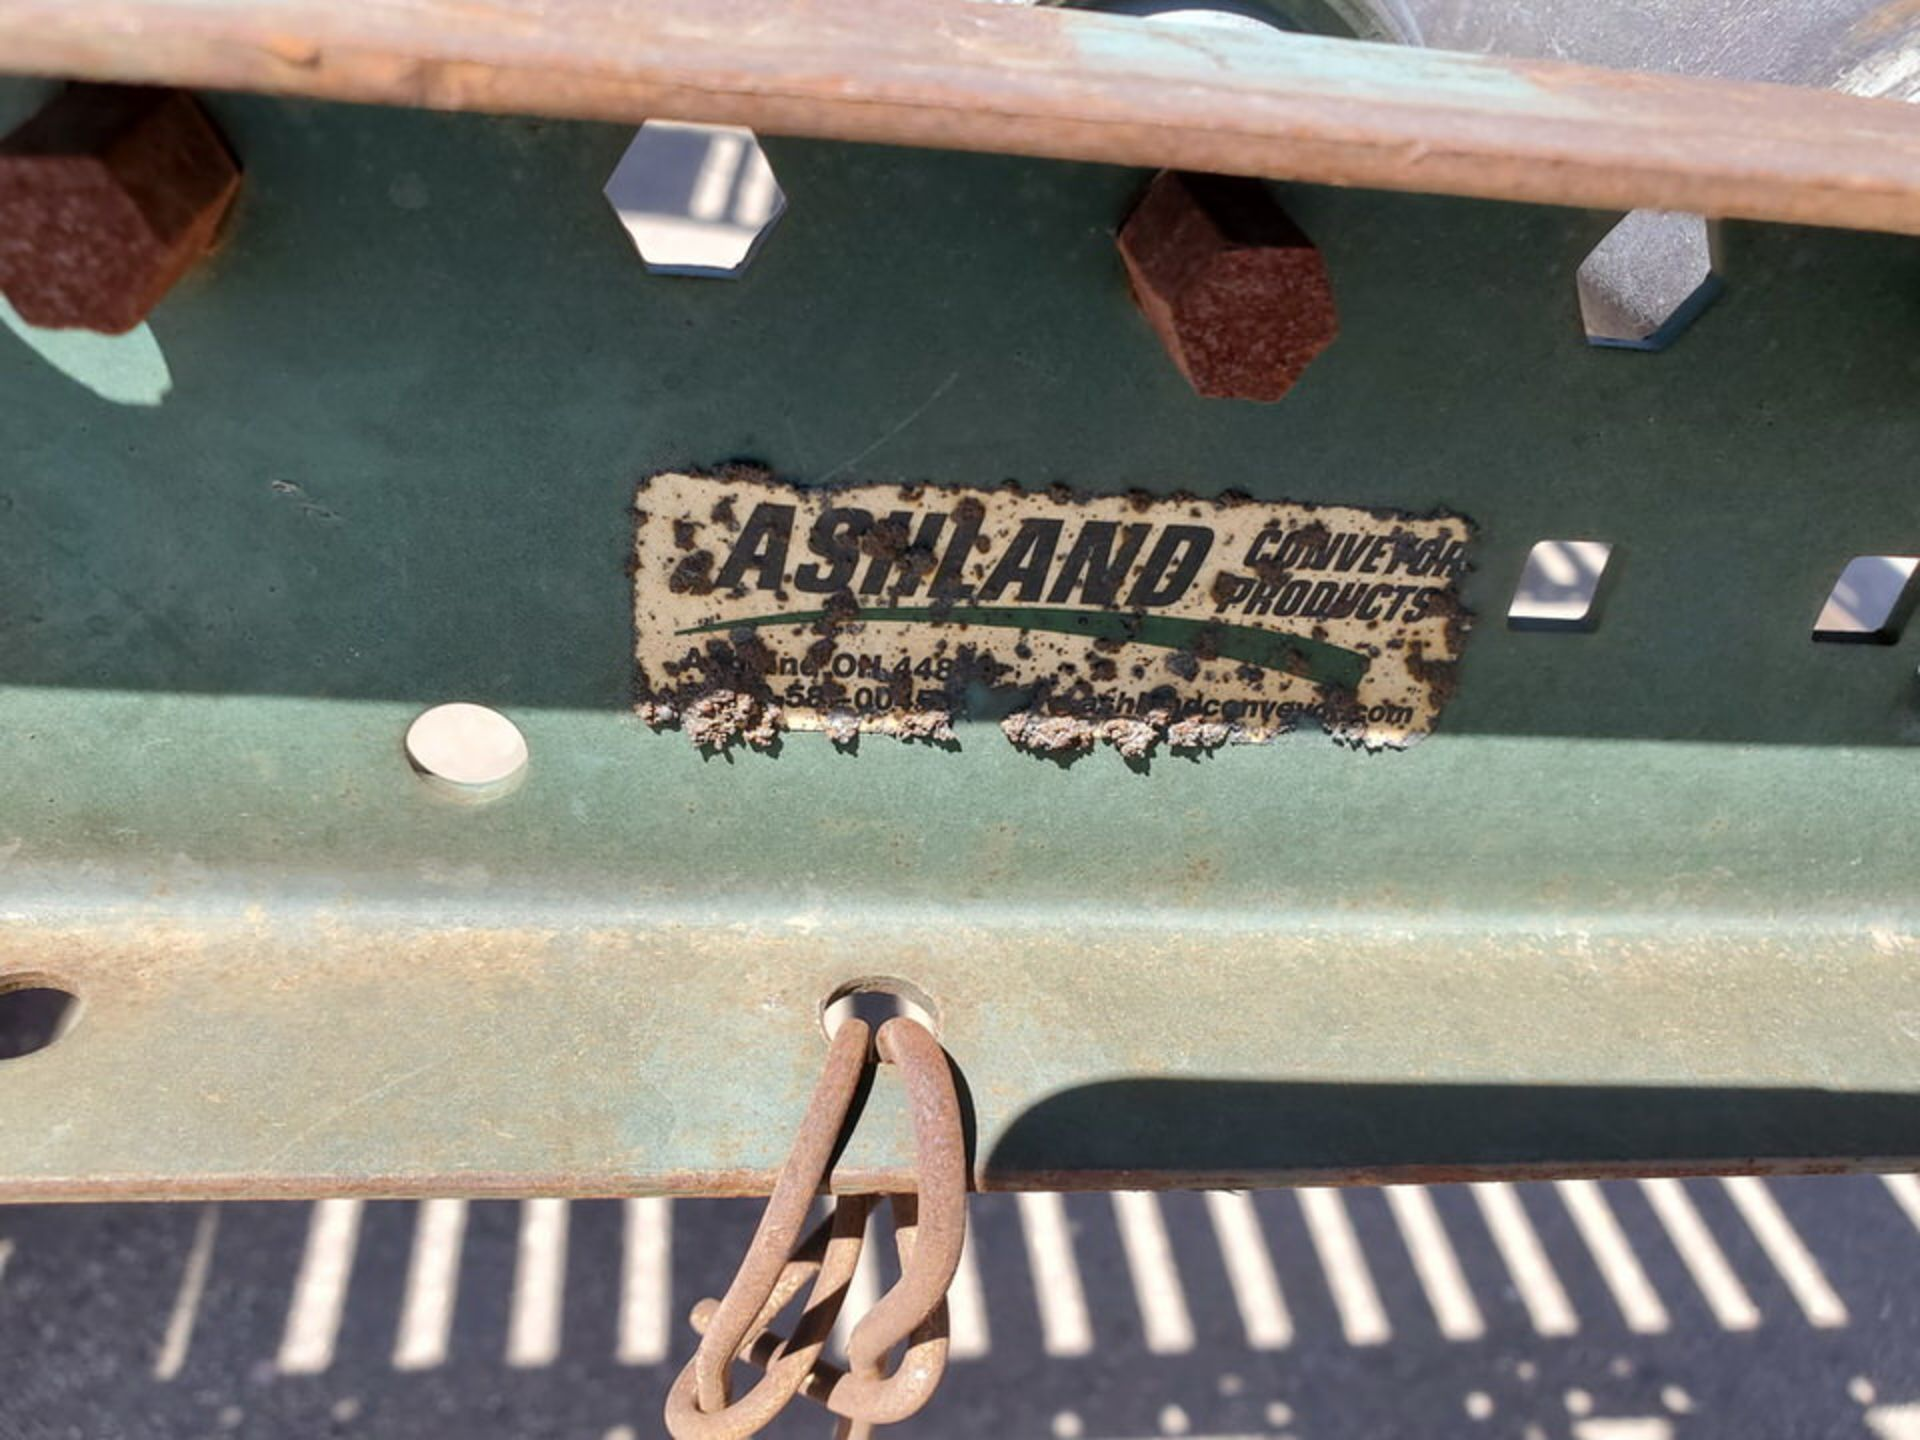 "Ashland & Other (6) Roller Conveyor 10' x 24"" - Image 7 of 7"